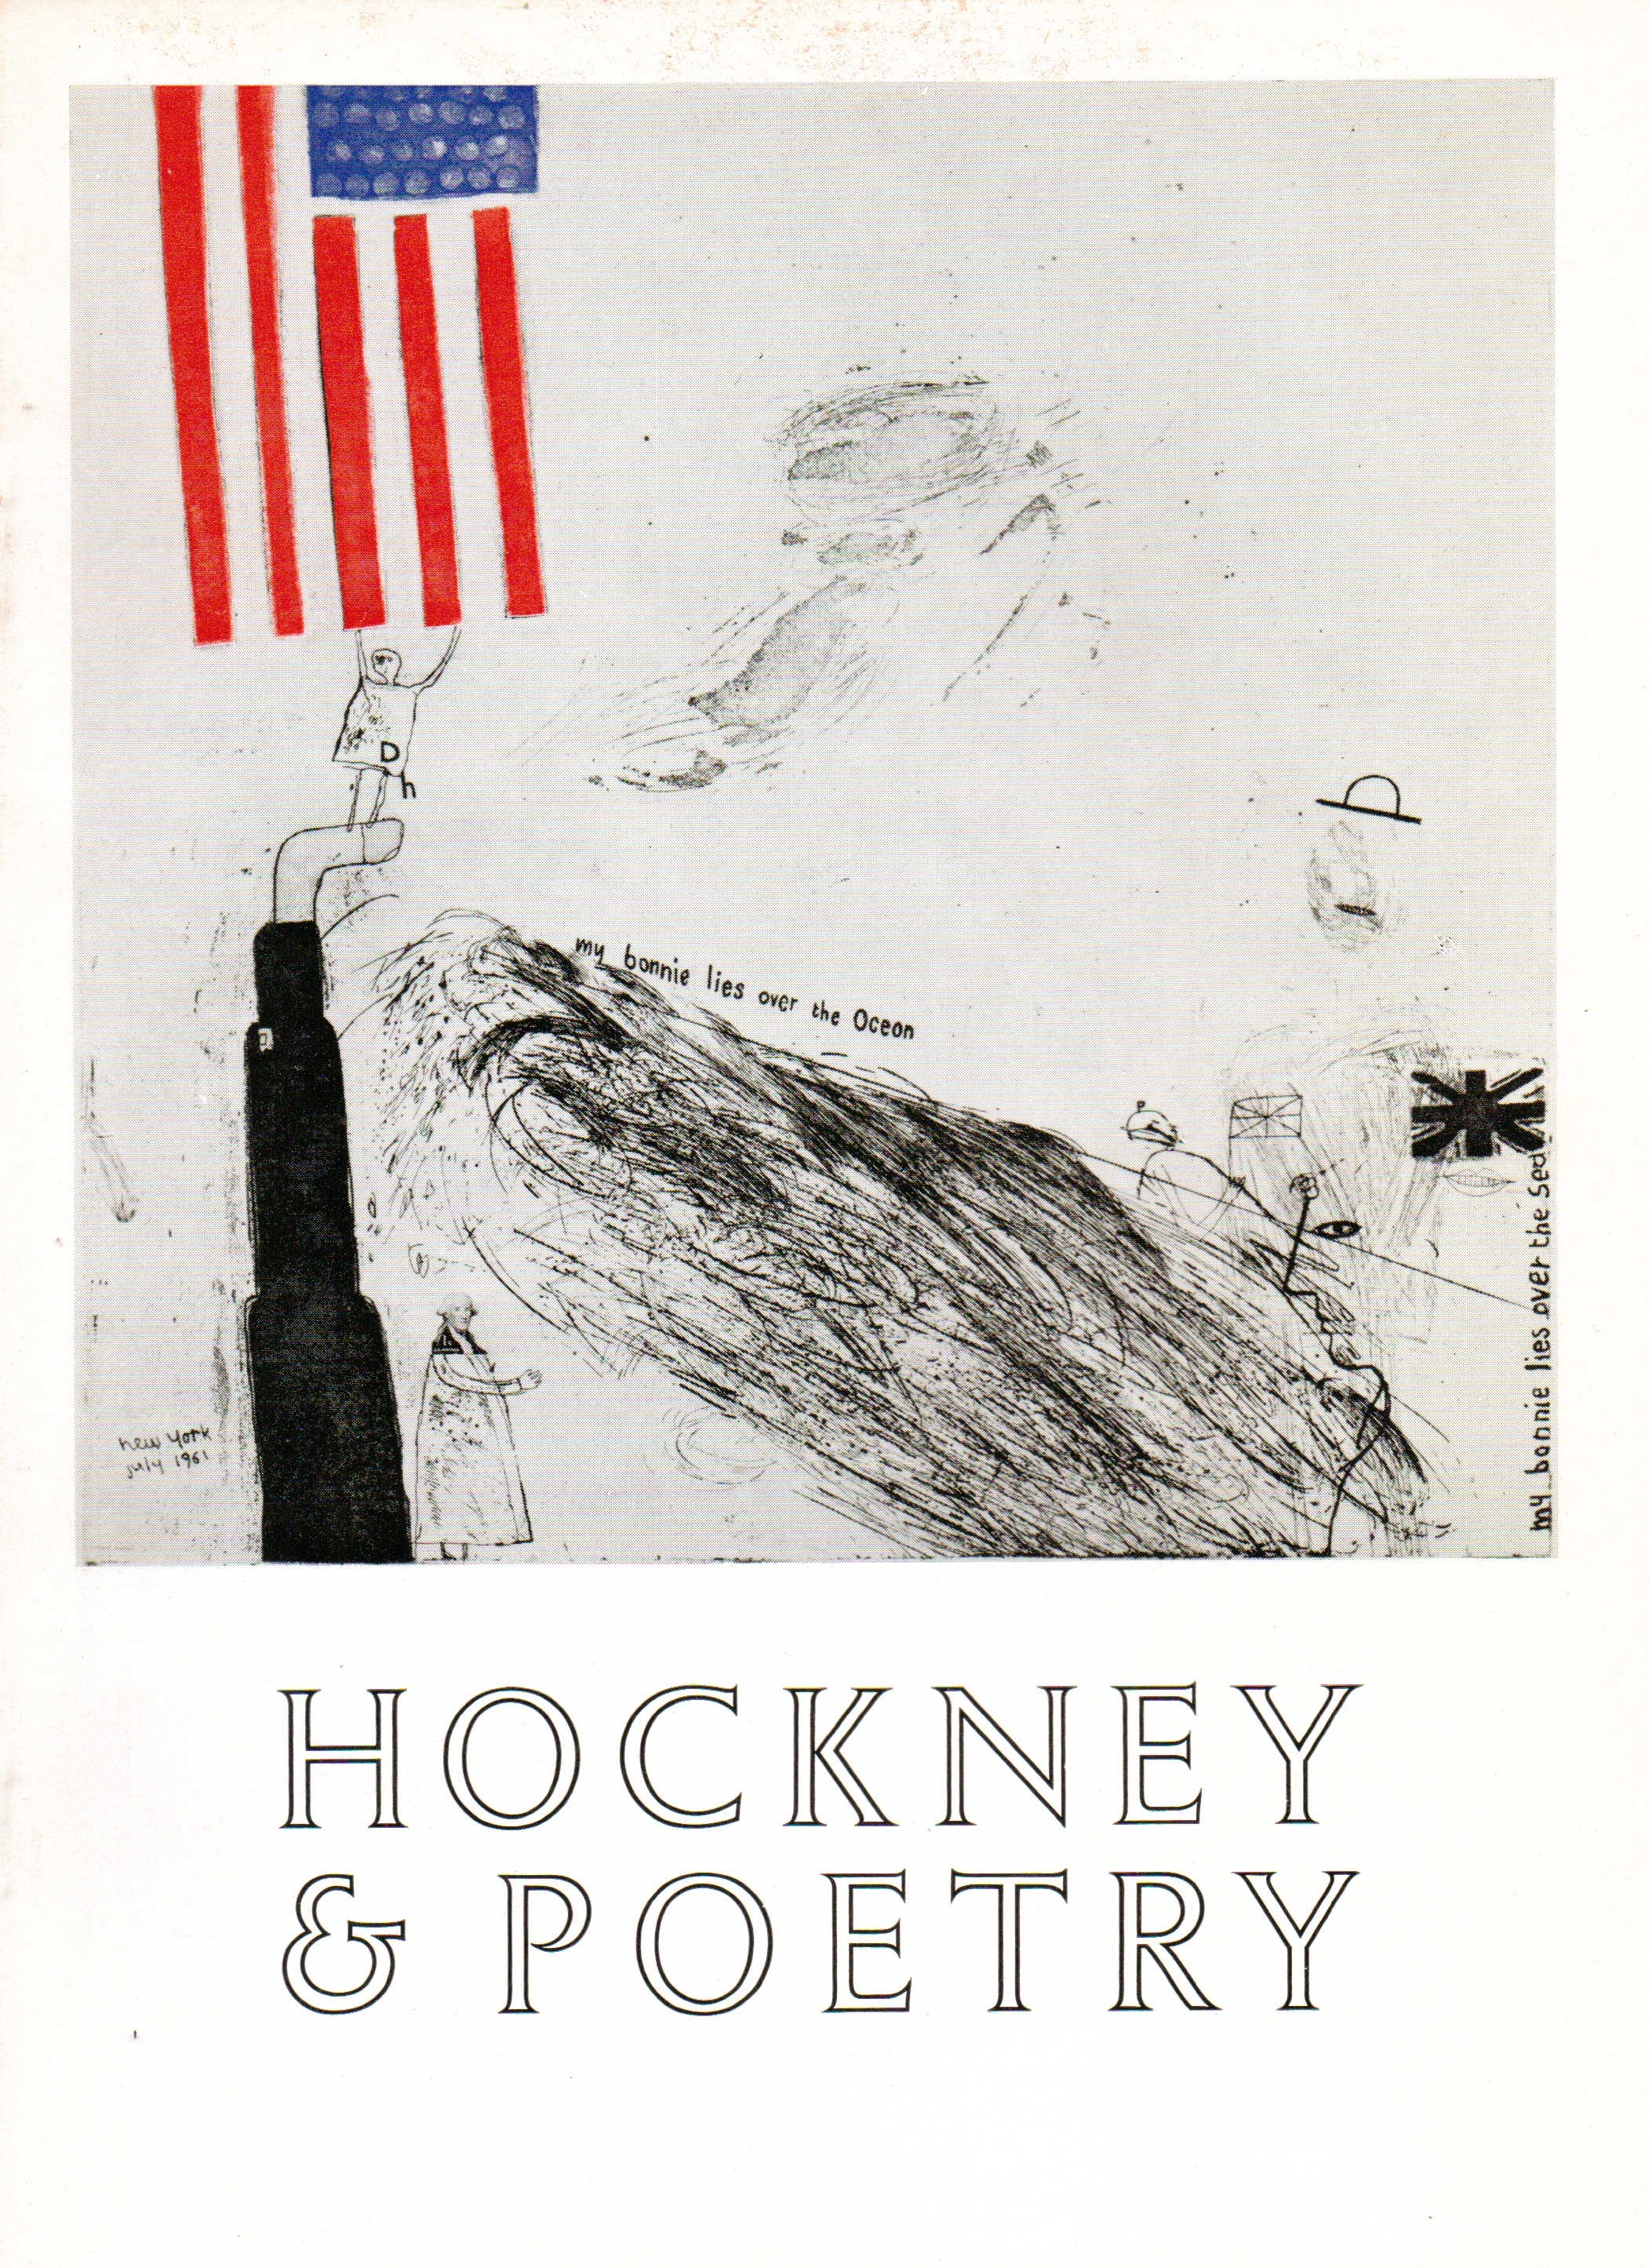 Hockney & Poetry